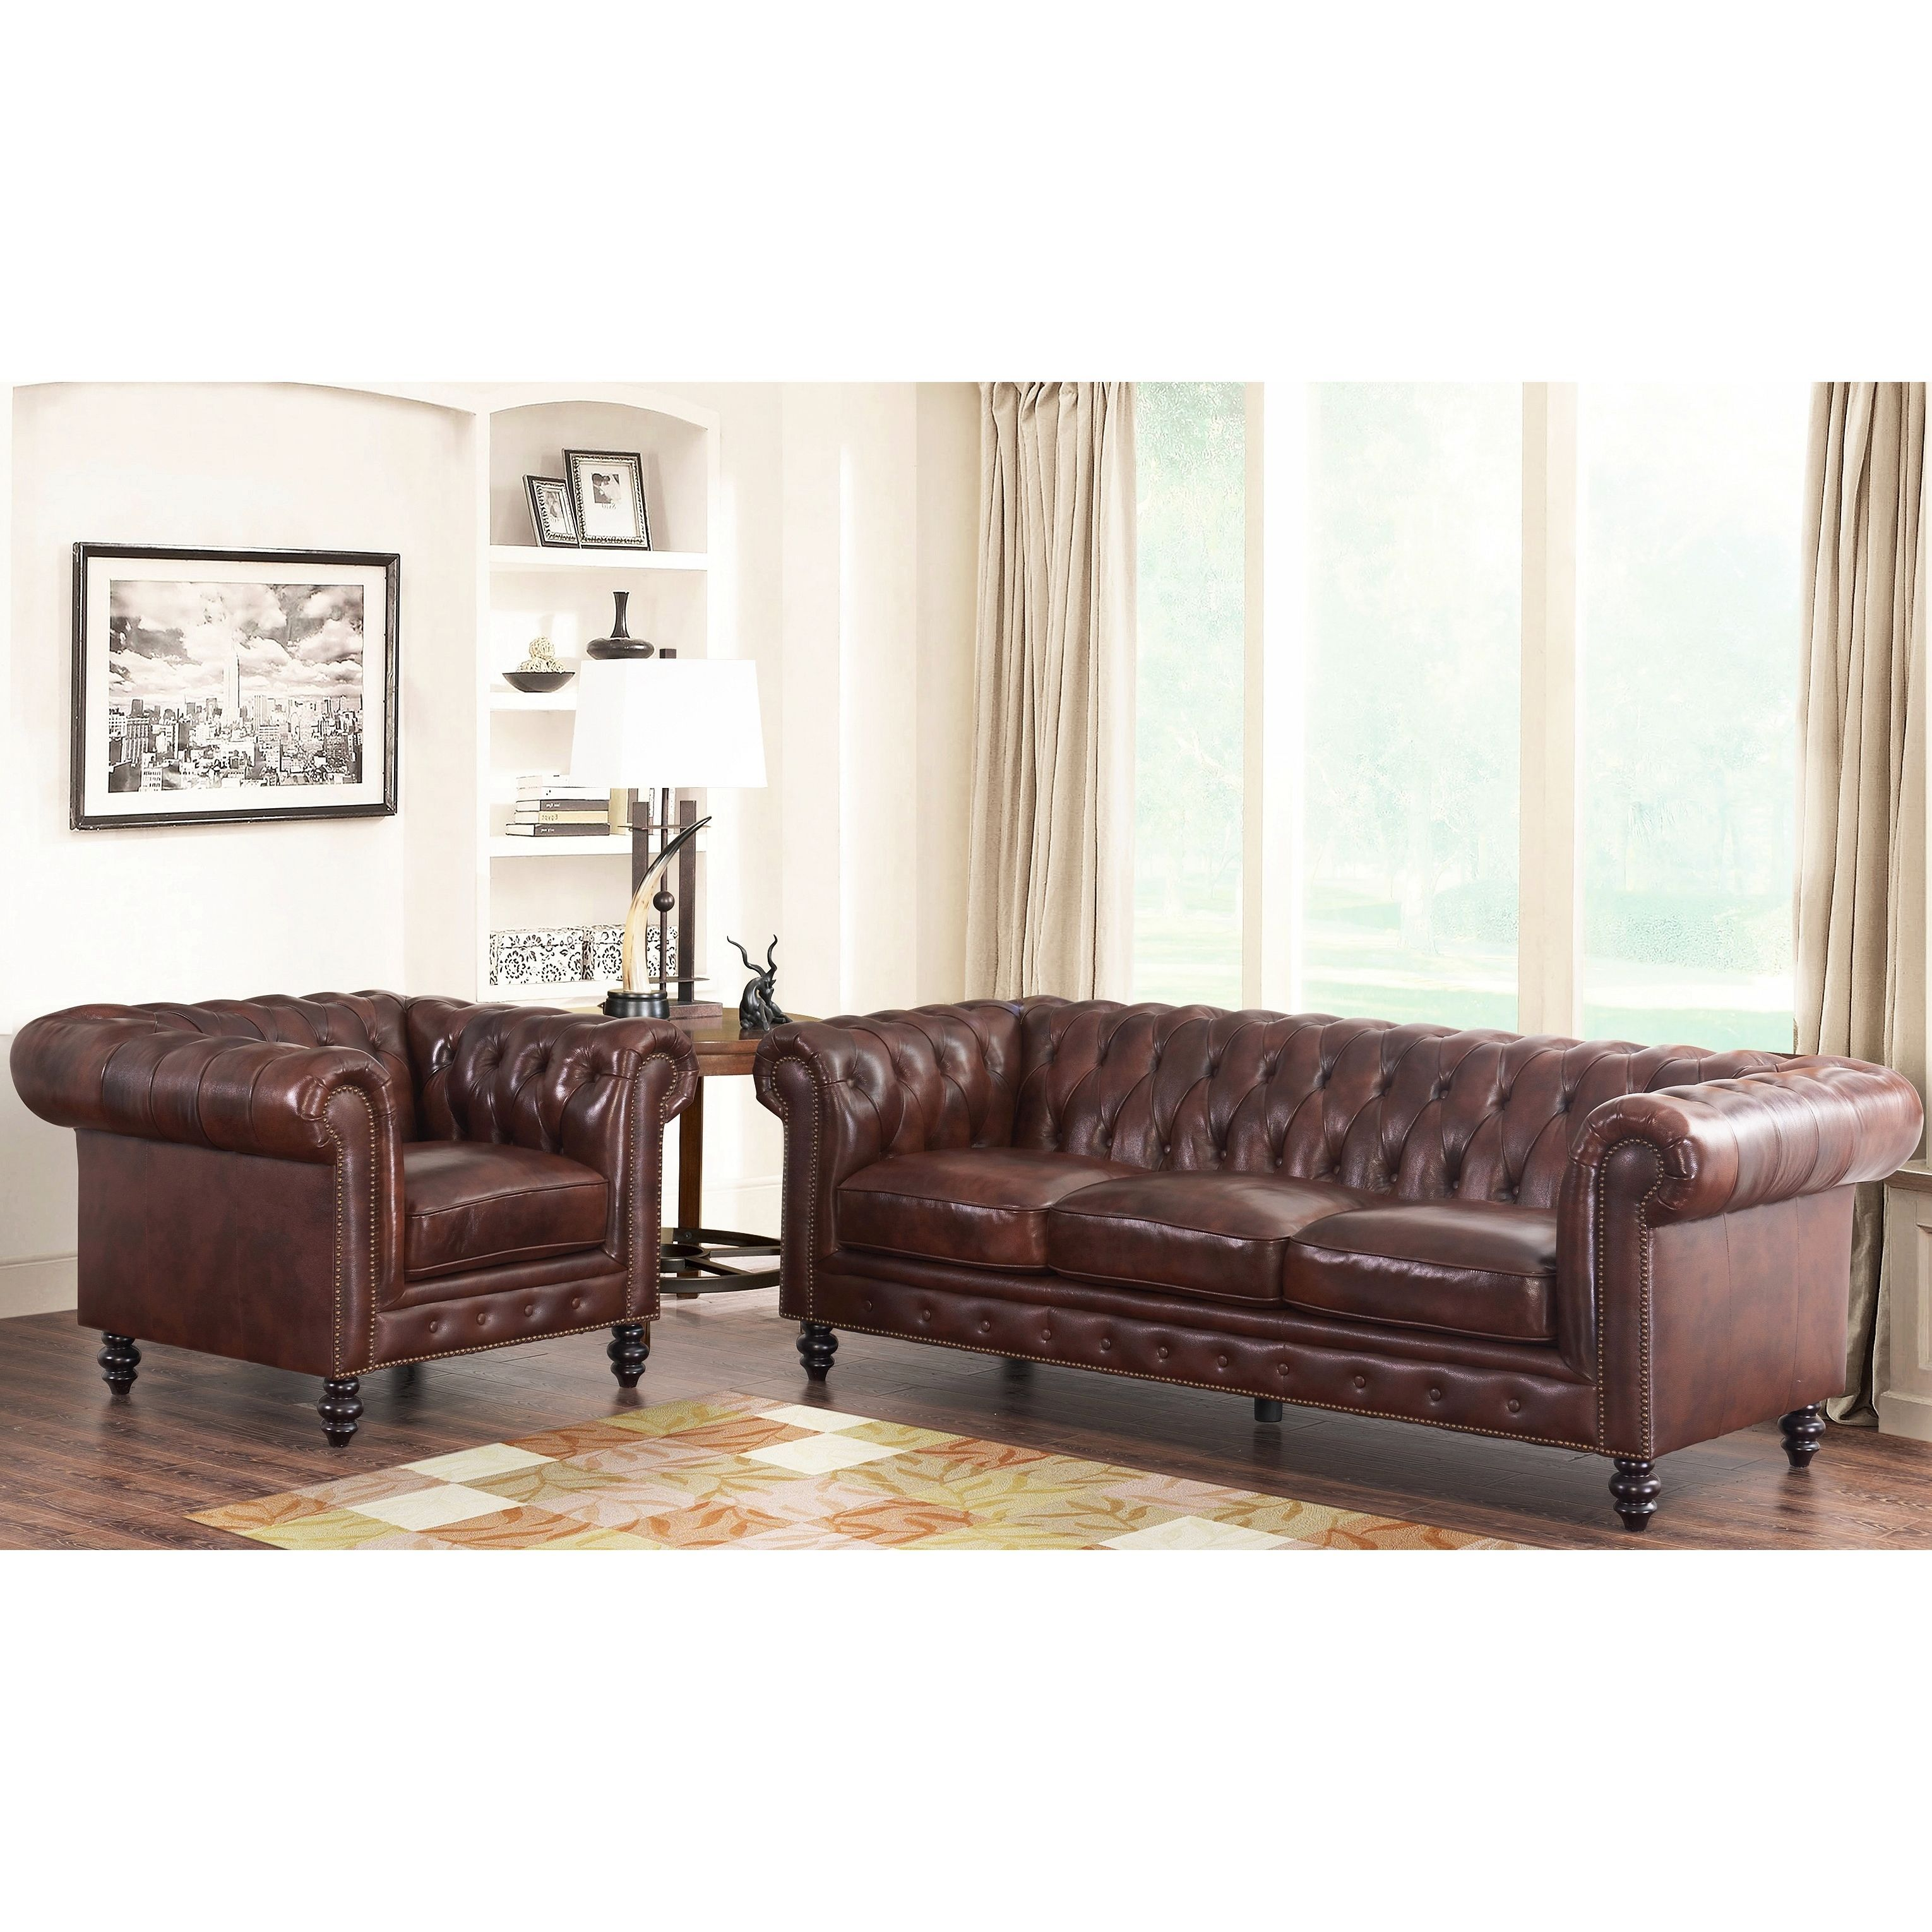 Leather Living Room Set Clearance: Bedding, Furniture, Electronics, Jewelry